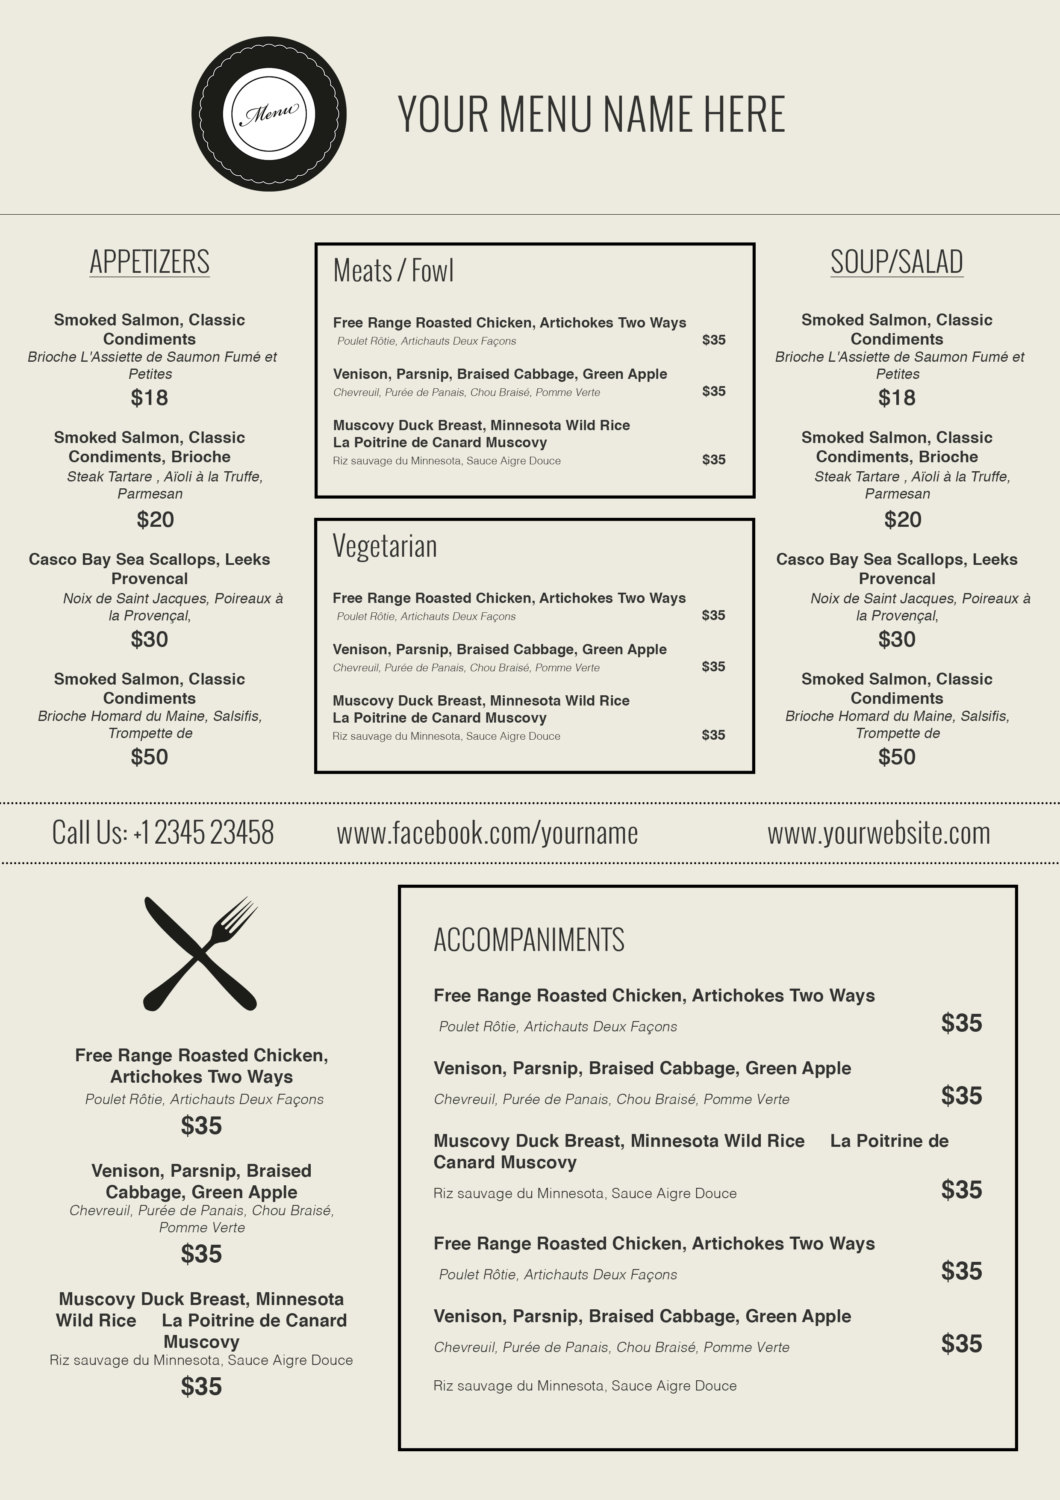 free restaurant menu template word - Boat.jeremyeaton.co